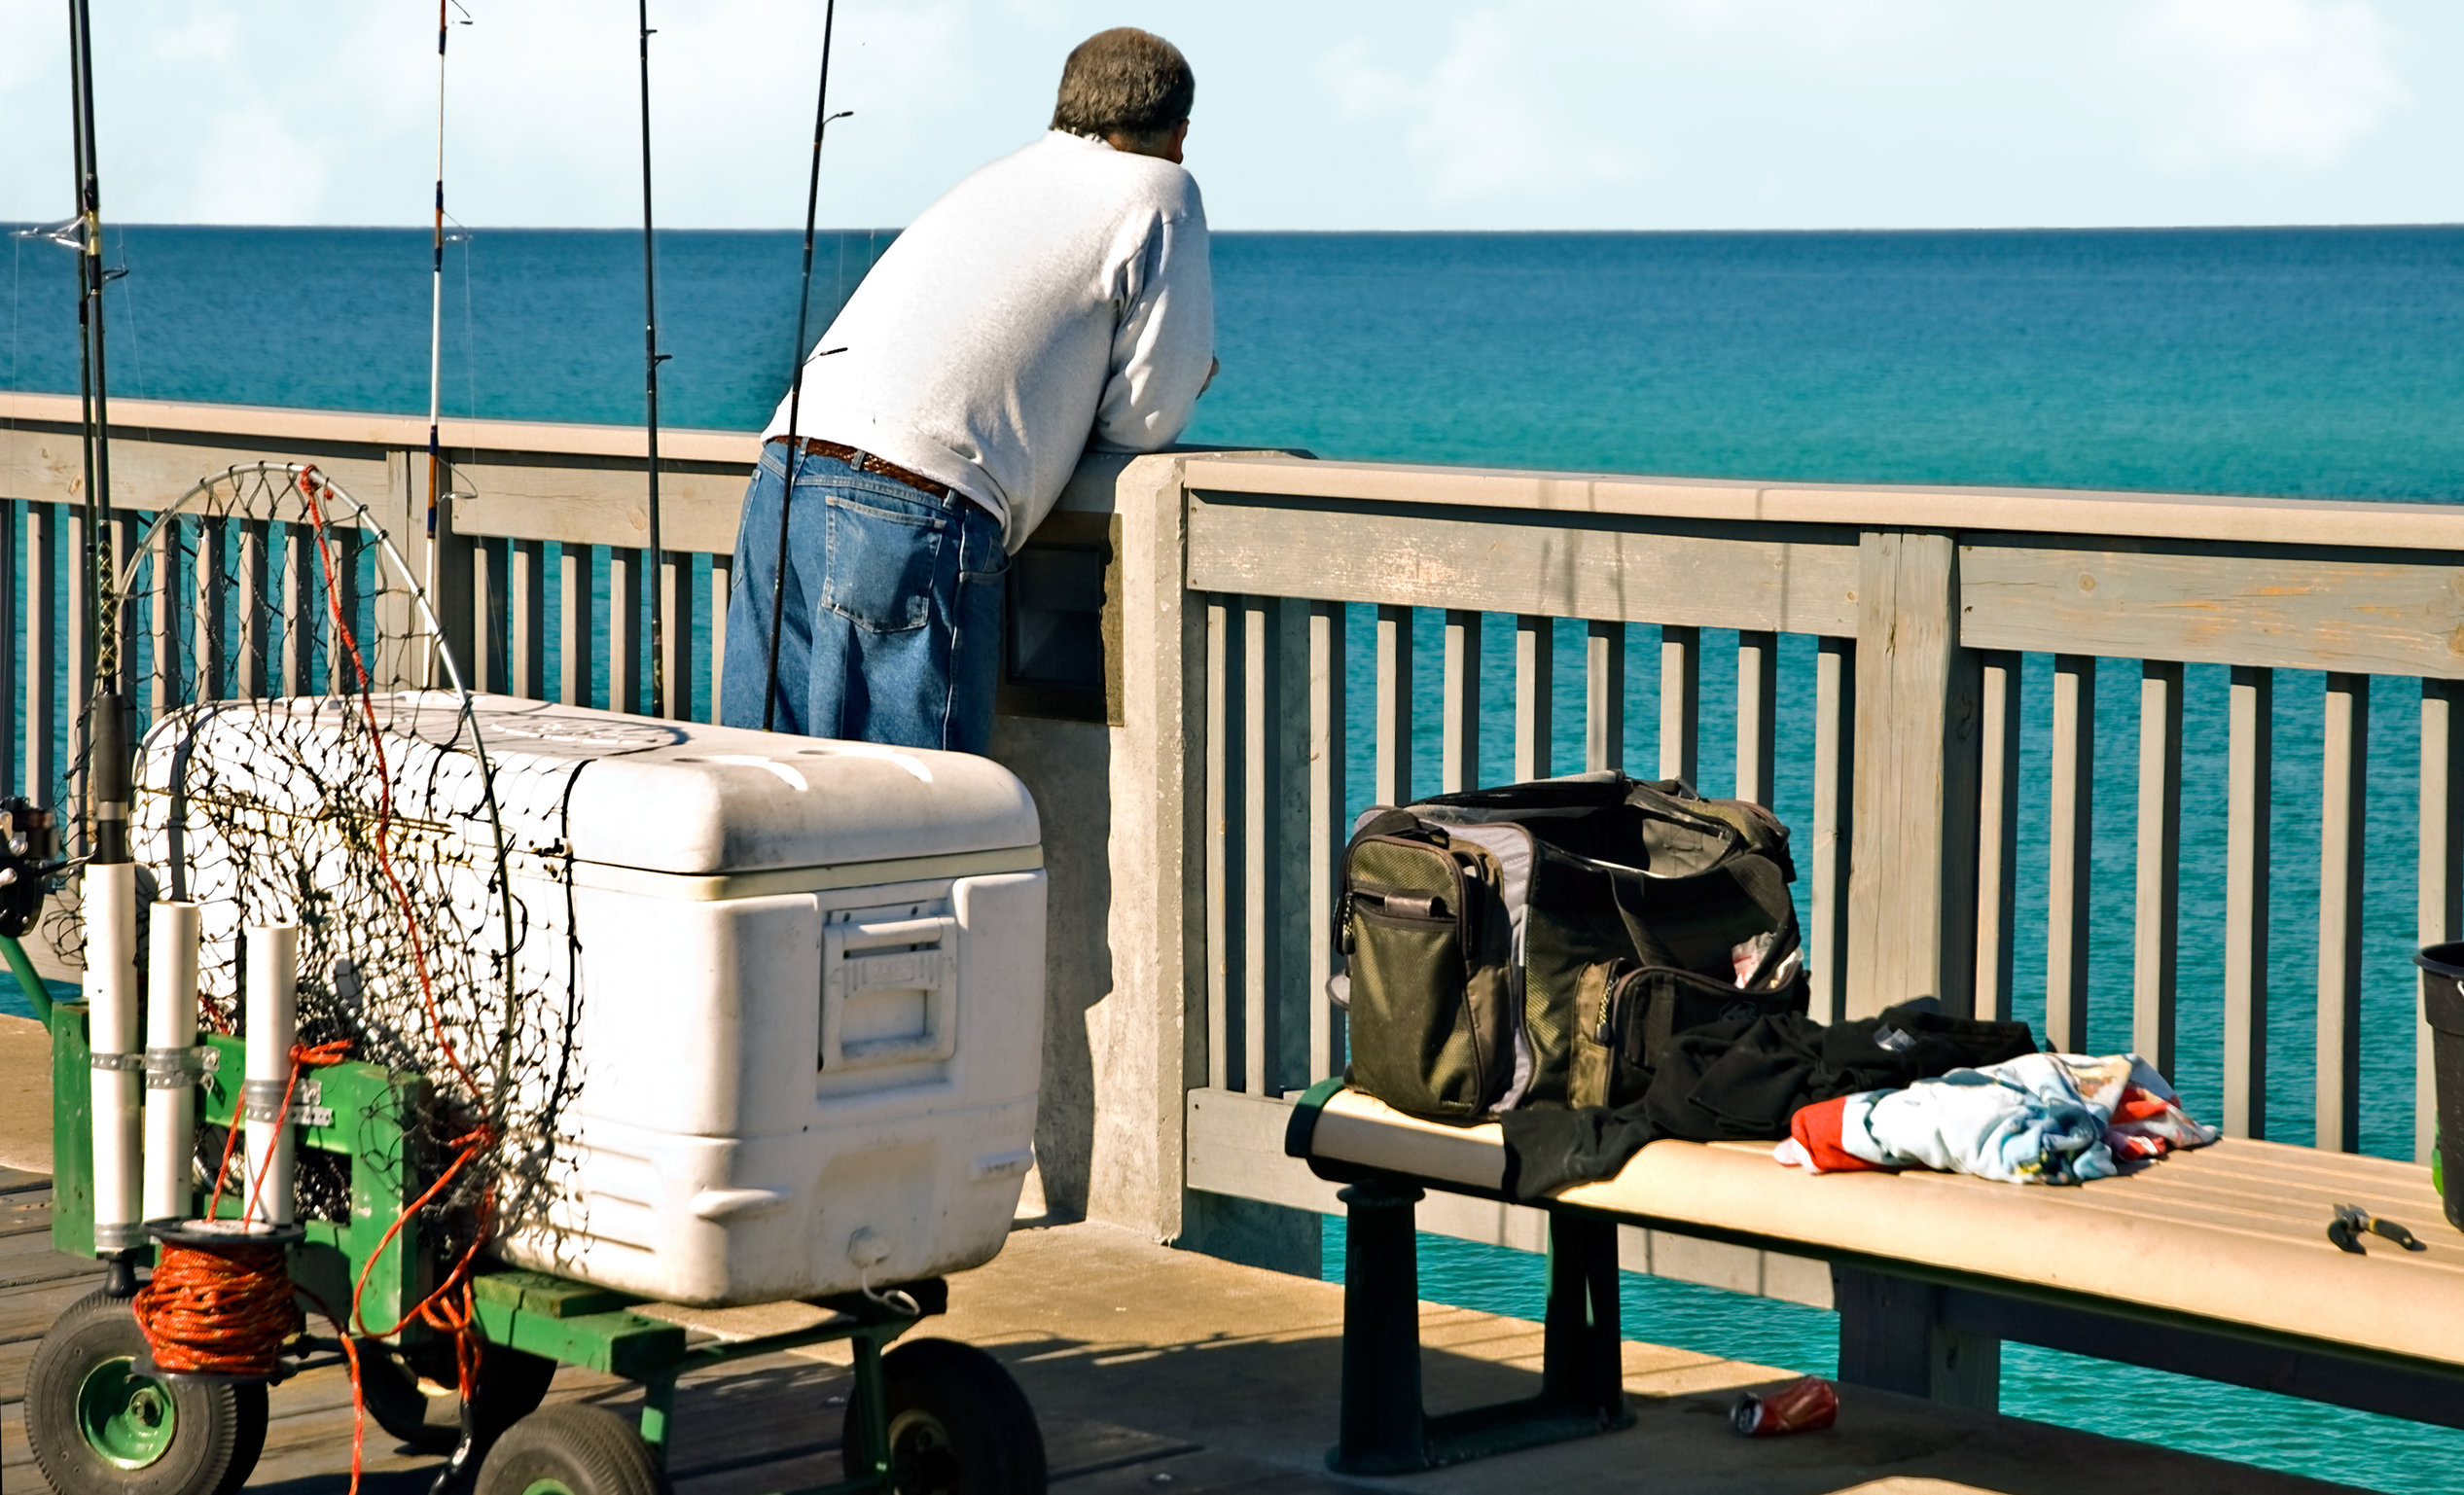 pier fishing gear with an angler leaning on the railing of the pier and the sea in the background